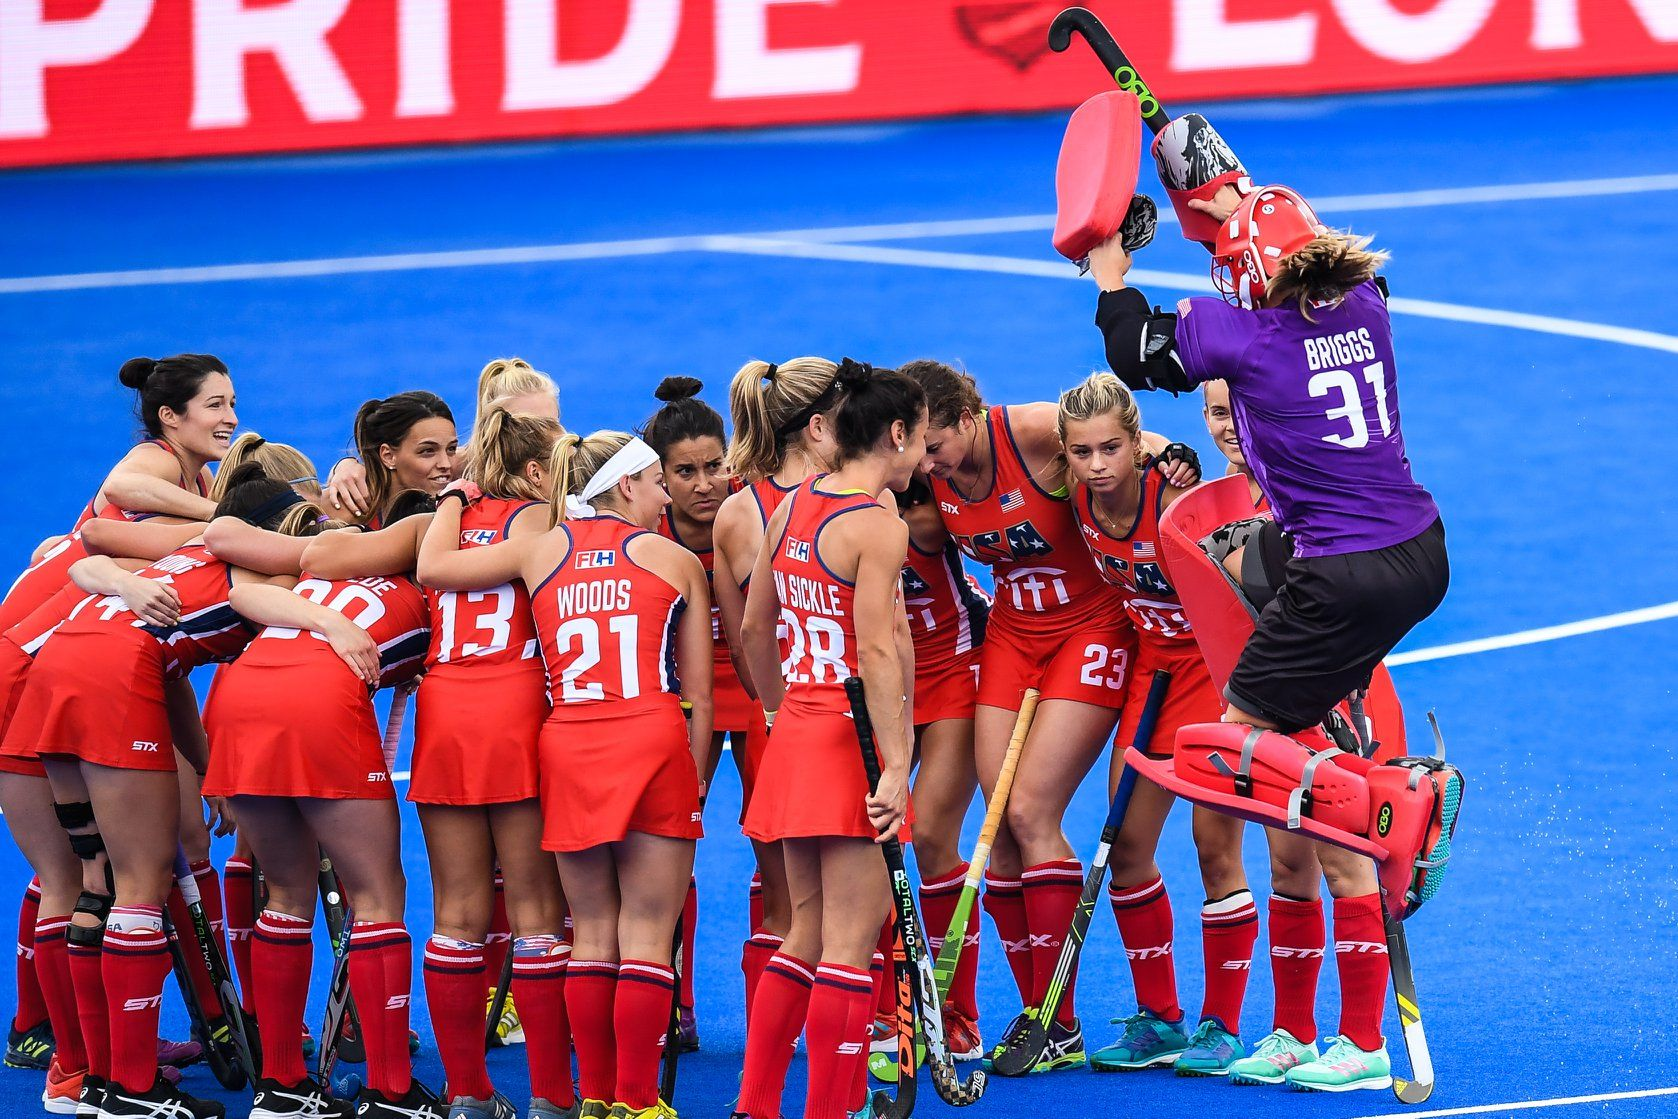 Usa Field Hockey Team Wearing Hocsocx At The 2018 Women S Hockey World Cup Field Hockey Women S Hockey Hockey